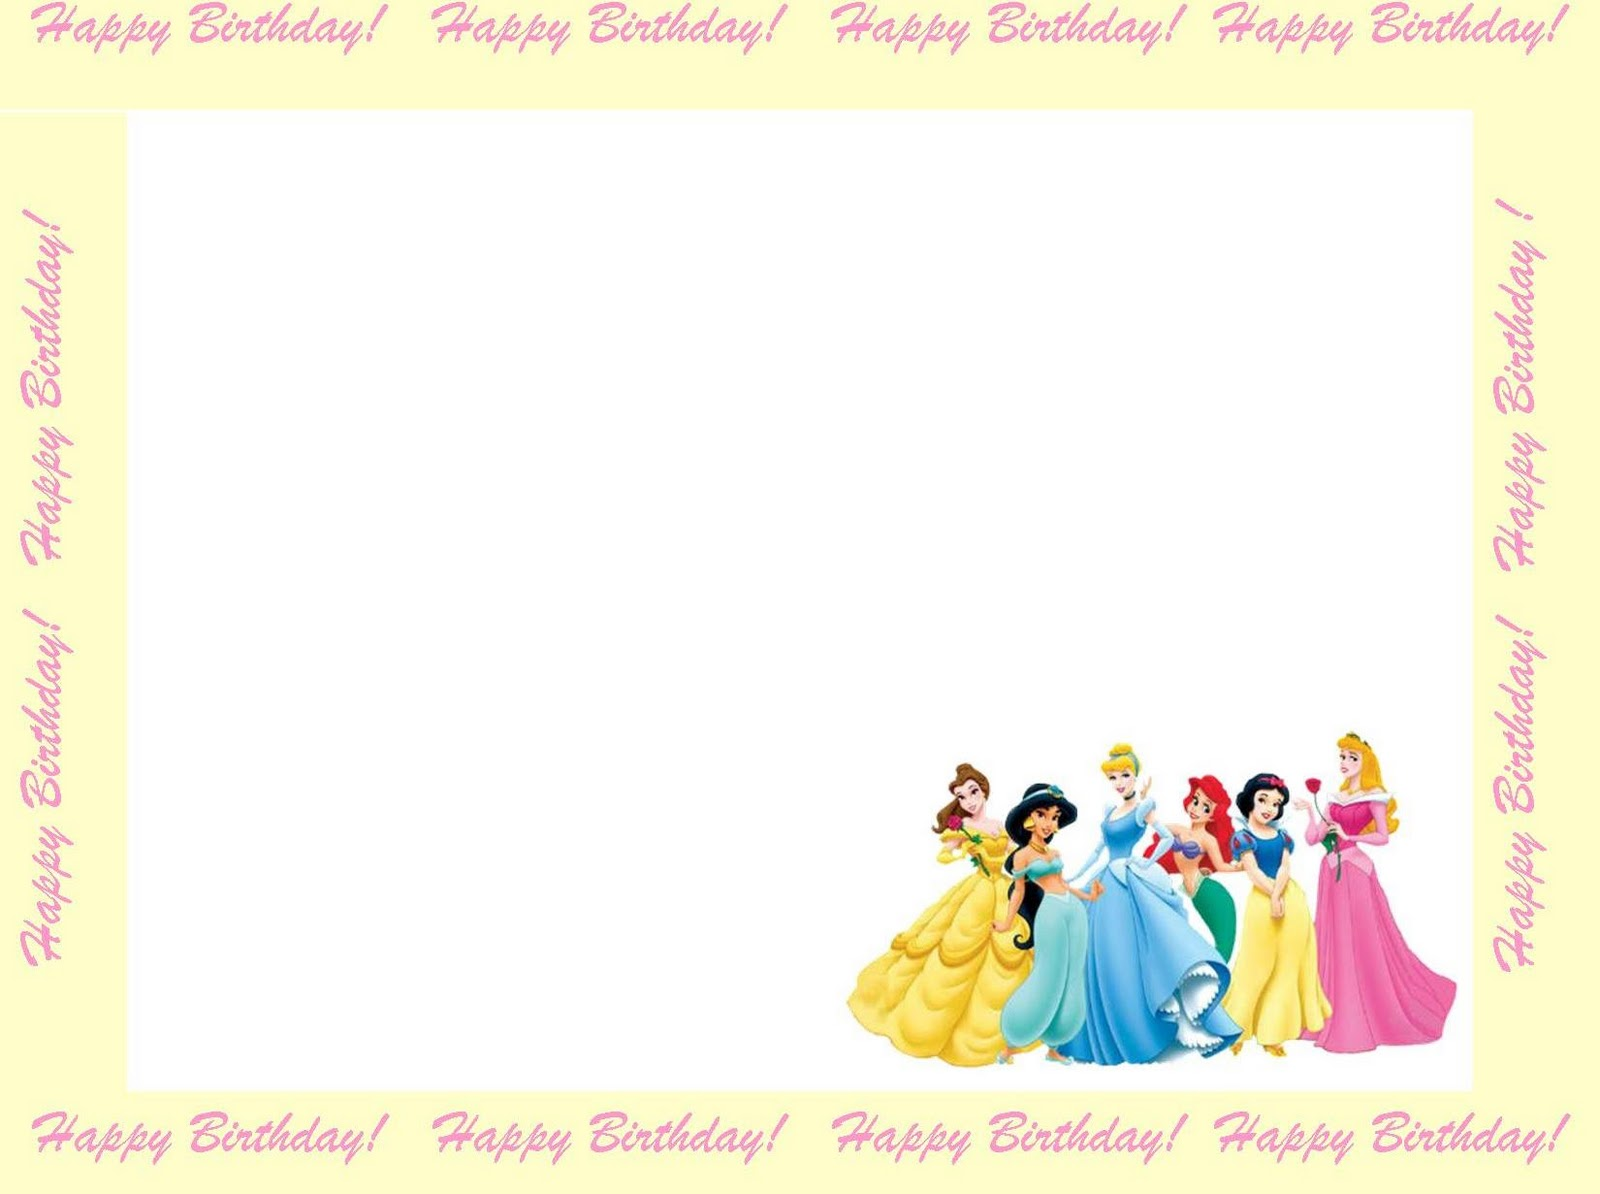 Free Fun Birthday Invitation Borders